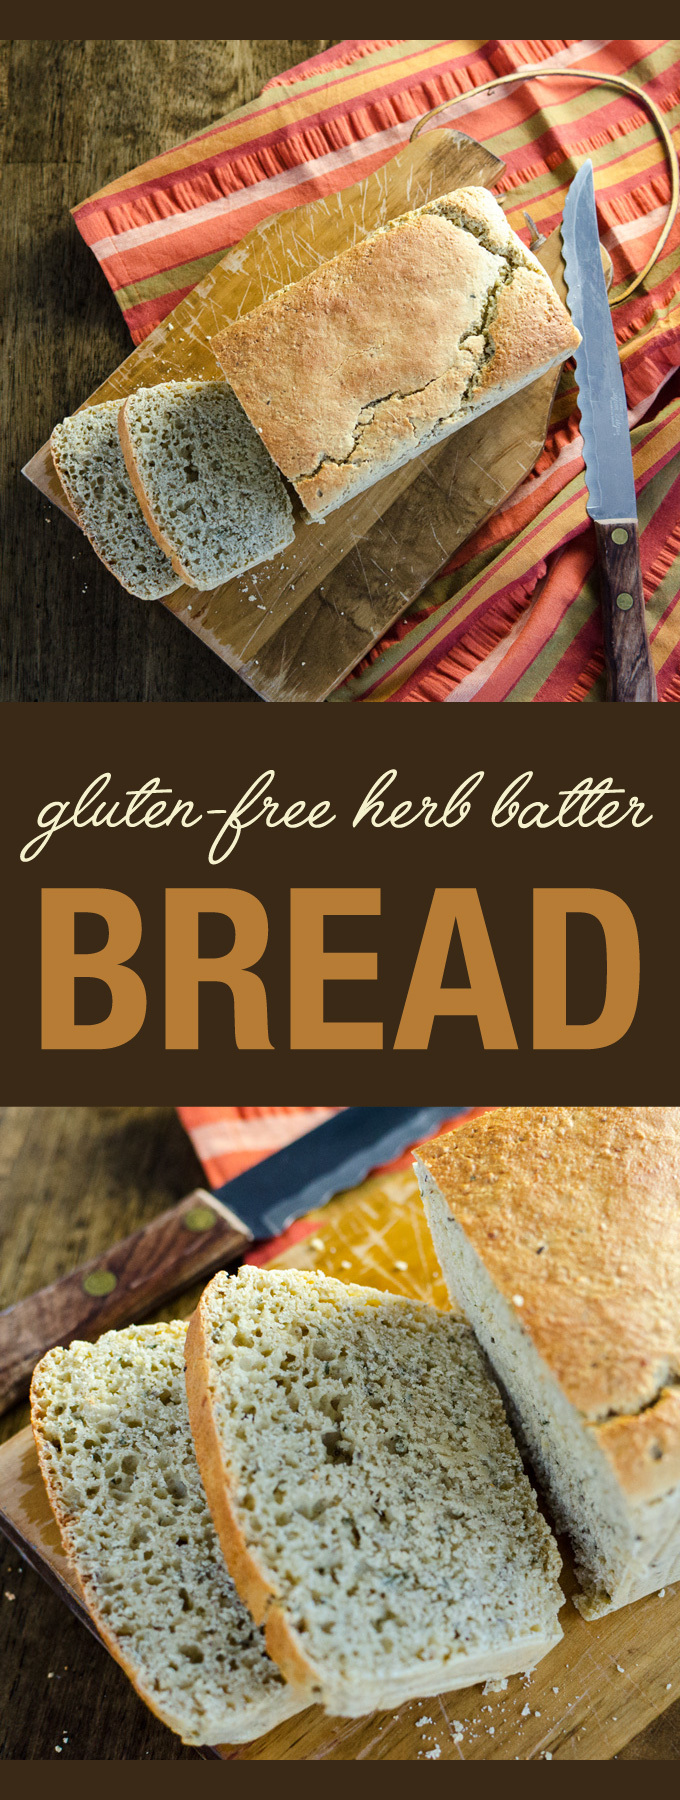 Gluten-Free Herb Batter Bread - a savory crusty vegan recipe that goes well with soup and salad - make in just 6 easy steps | VeggiePrimer.com